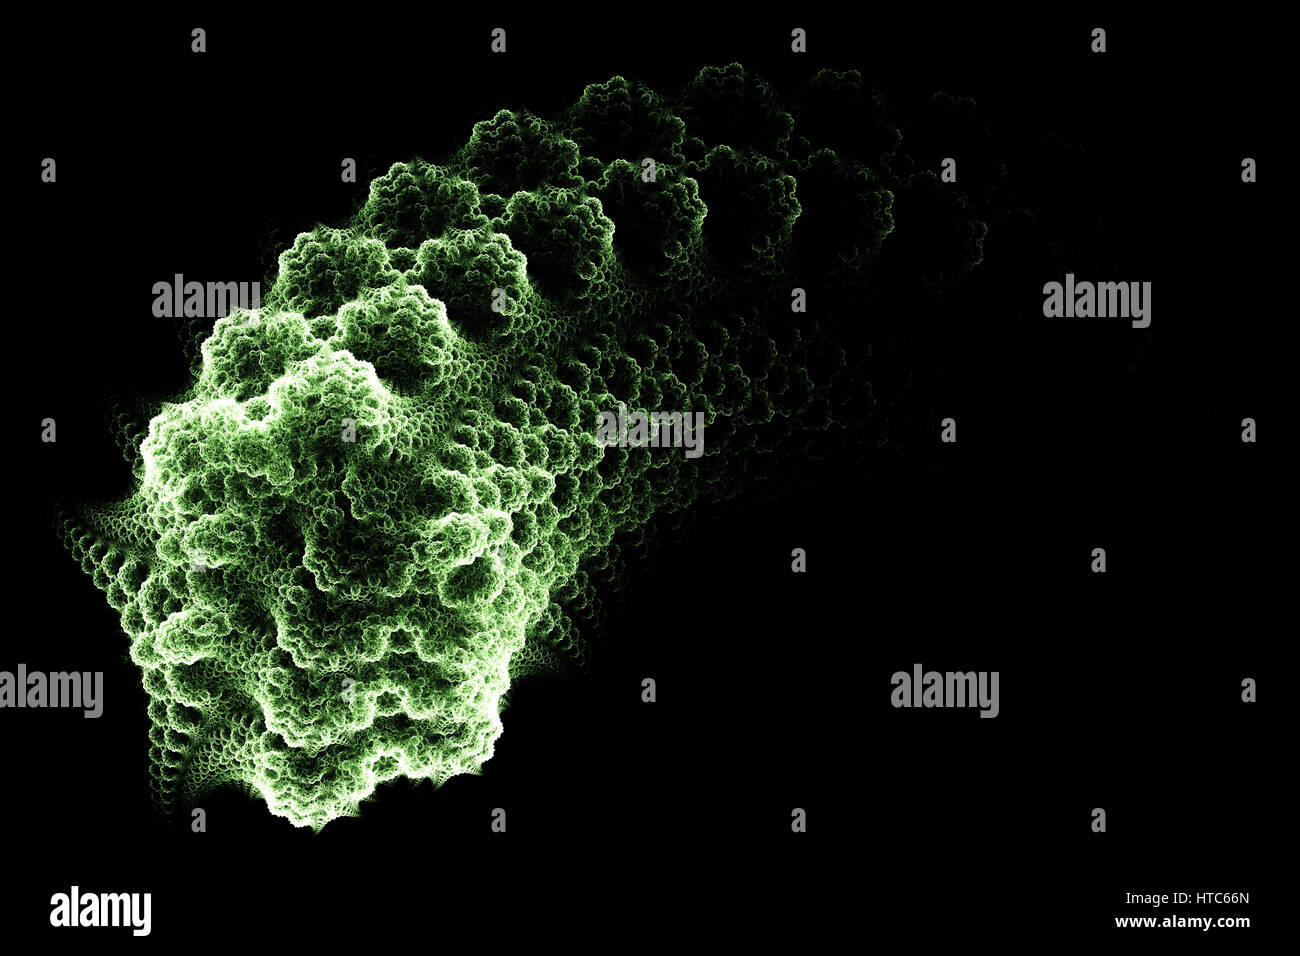 Green germ. Micro organism. Abstract background. Isolated on black background. - Stock Image